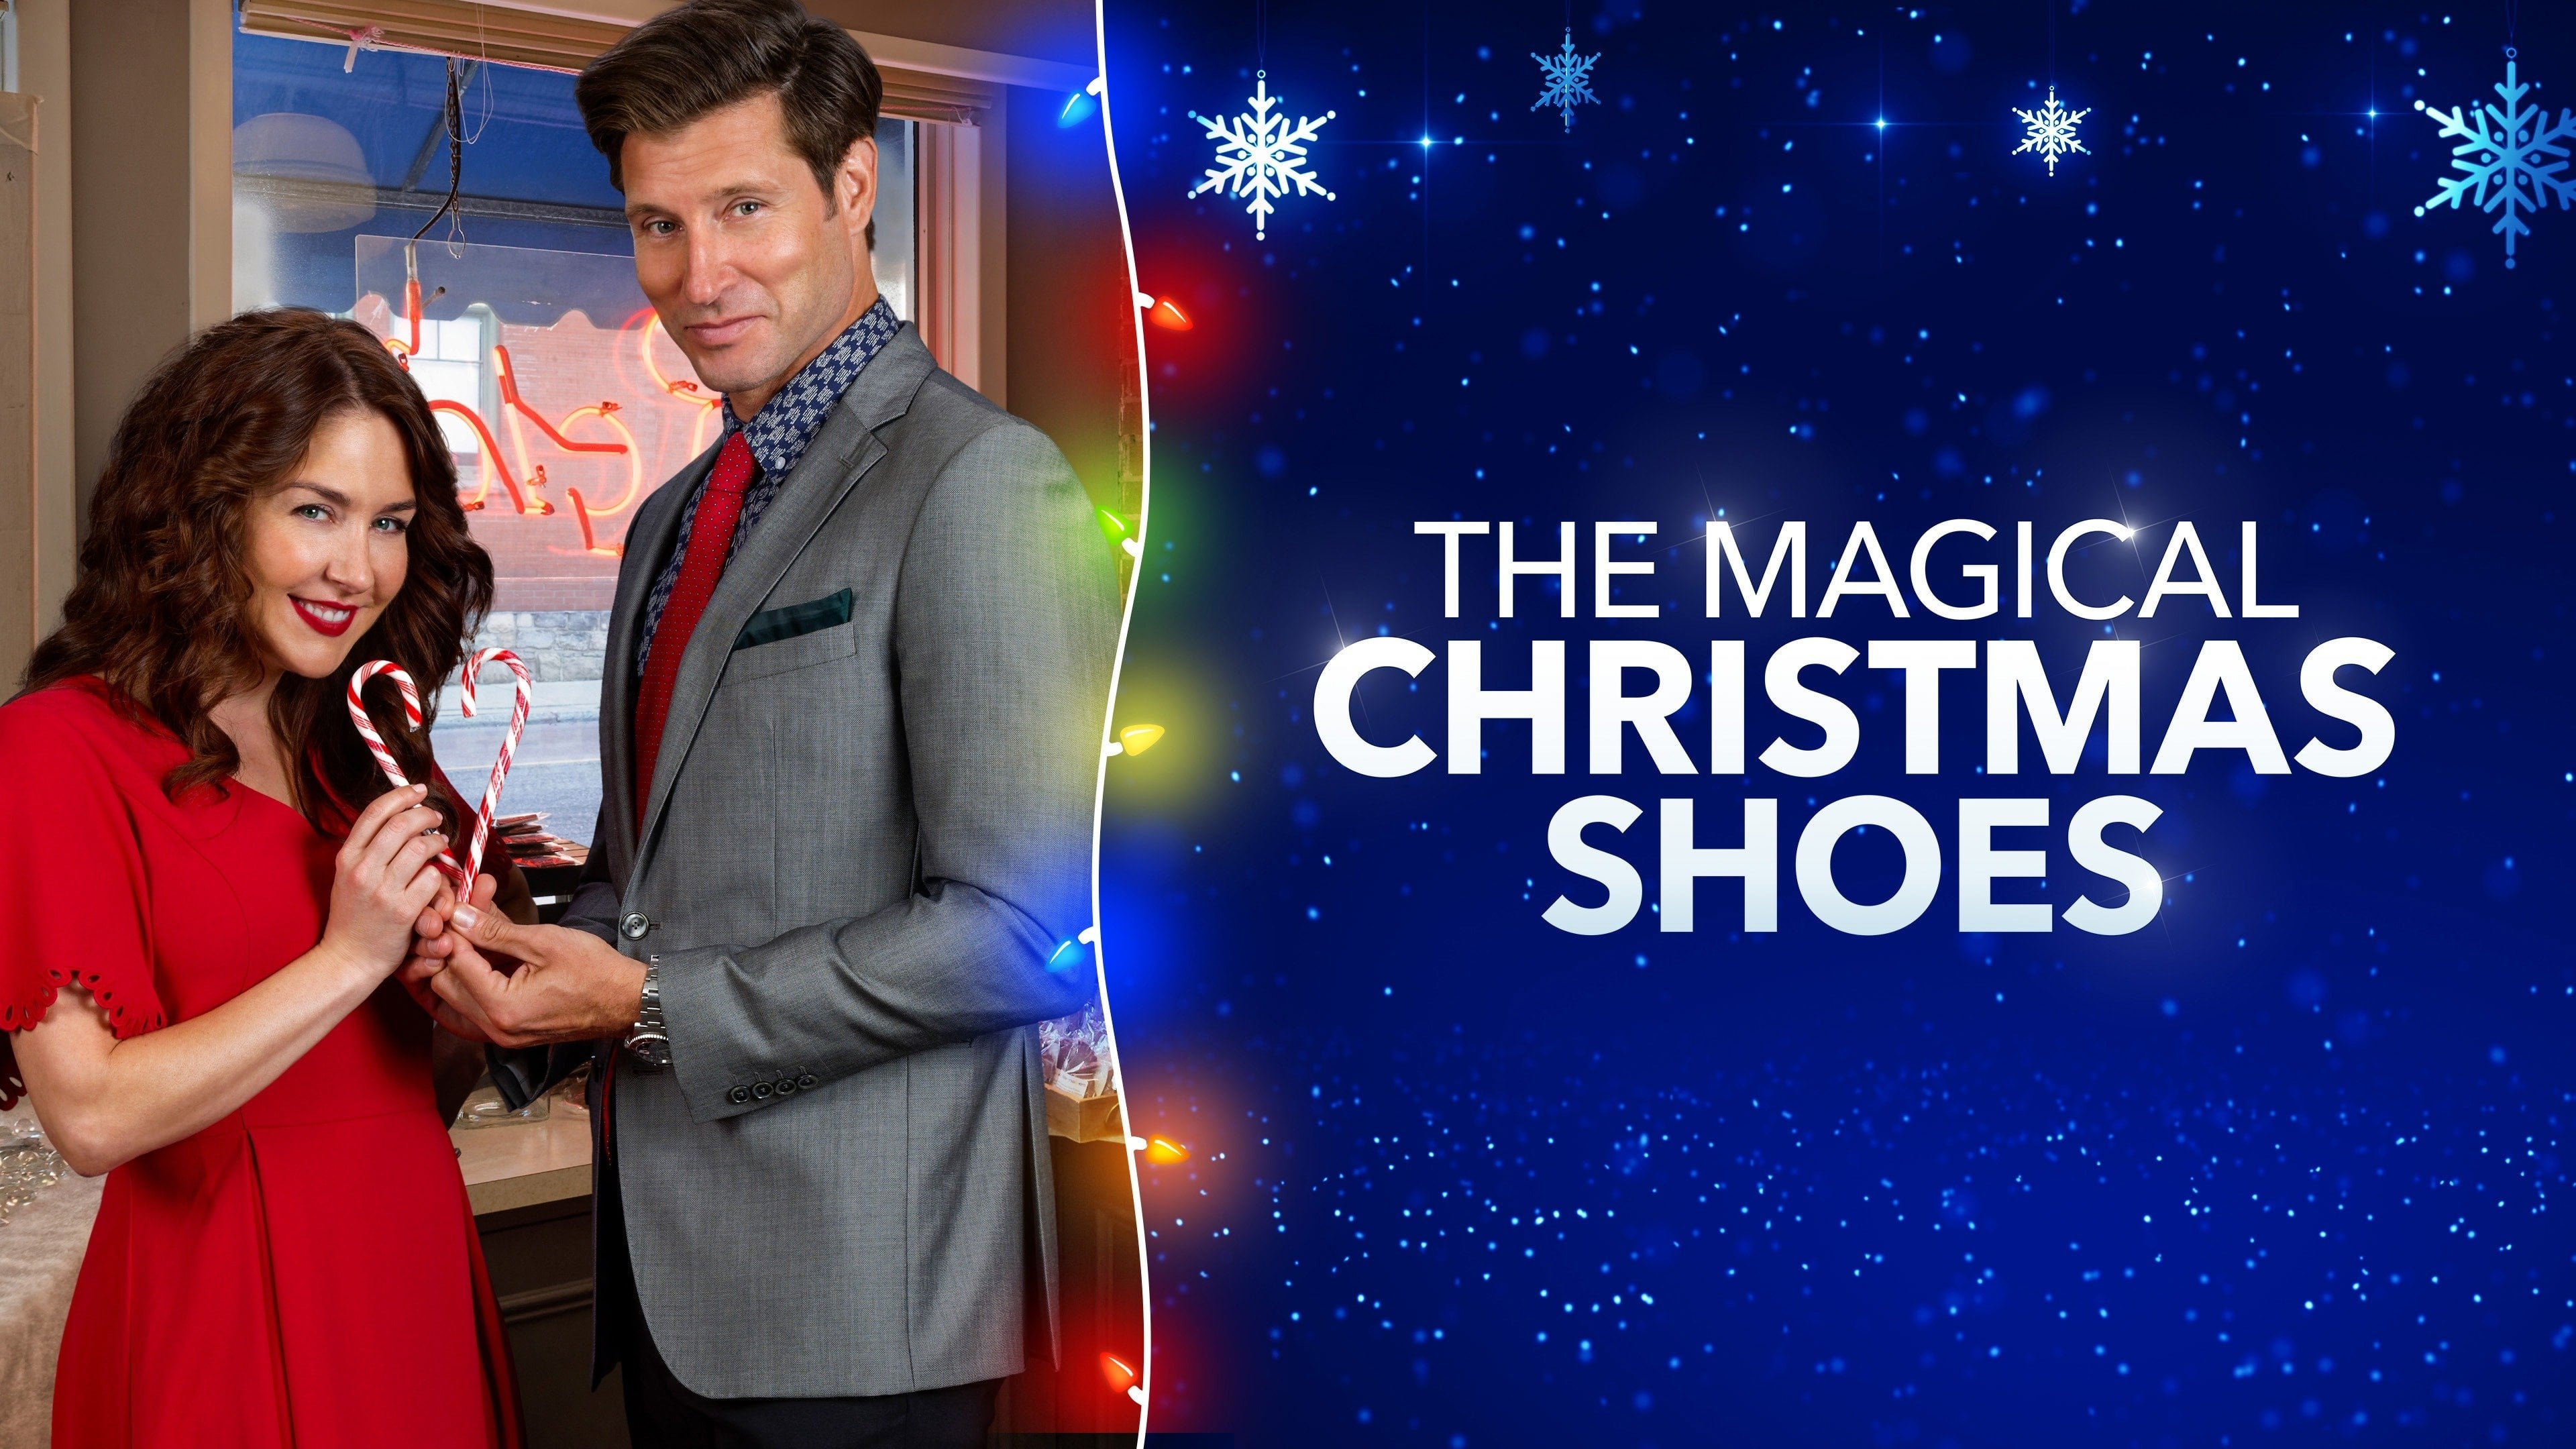 The Magical Christmas Shoes